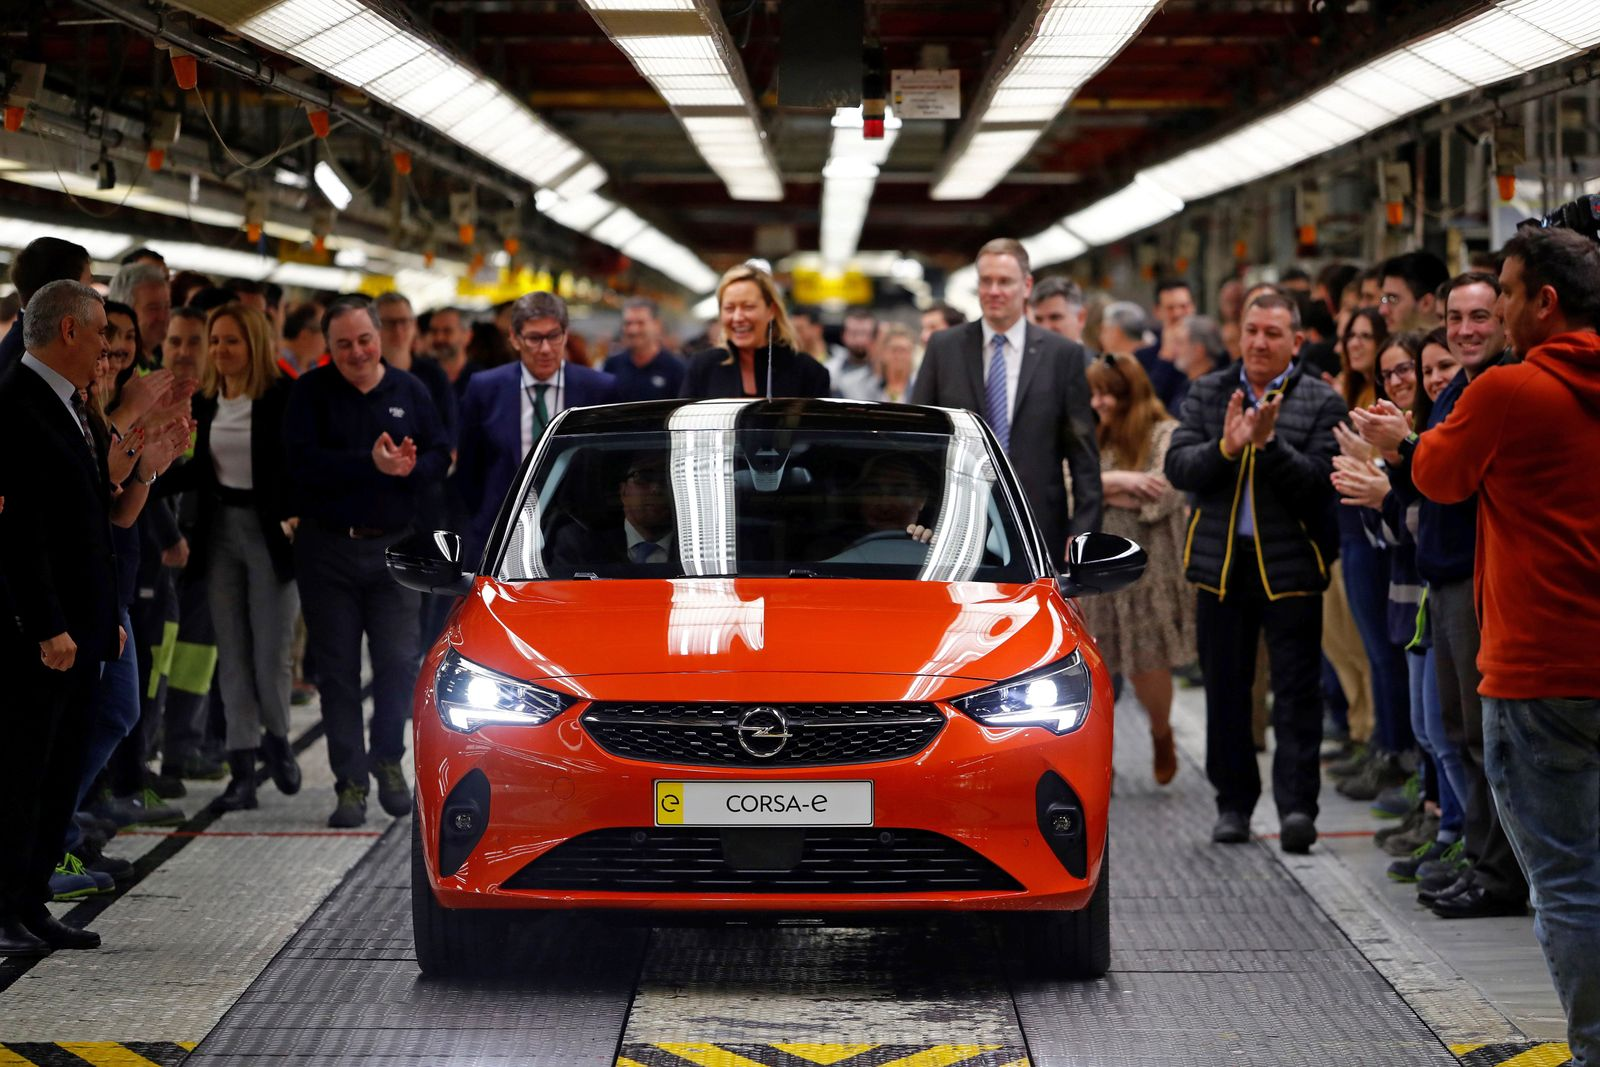 Launching of Opel Corsa-e, Figueruelas Zaragoza, Spain - 21 Feb 2020